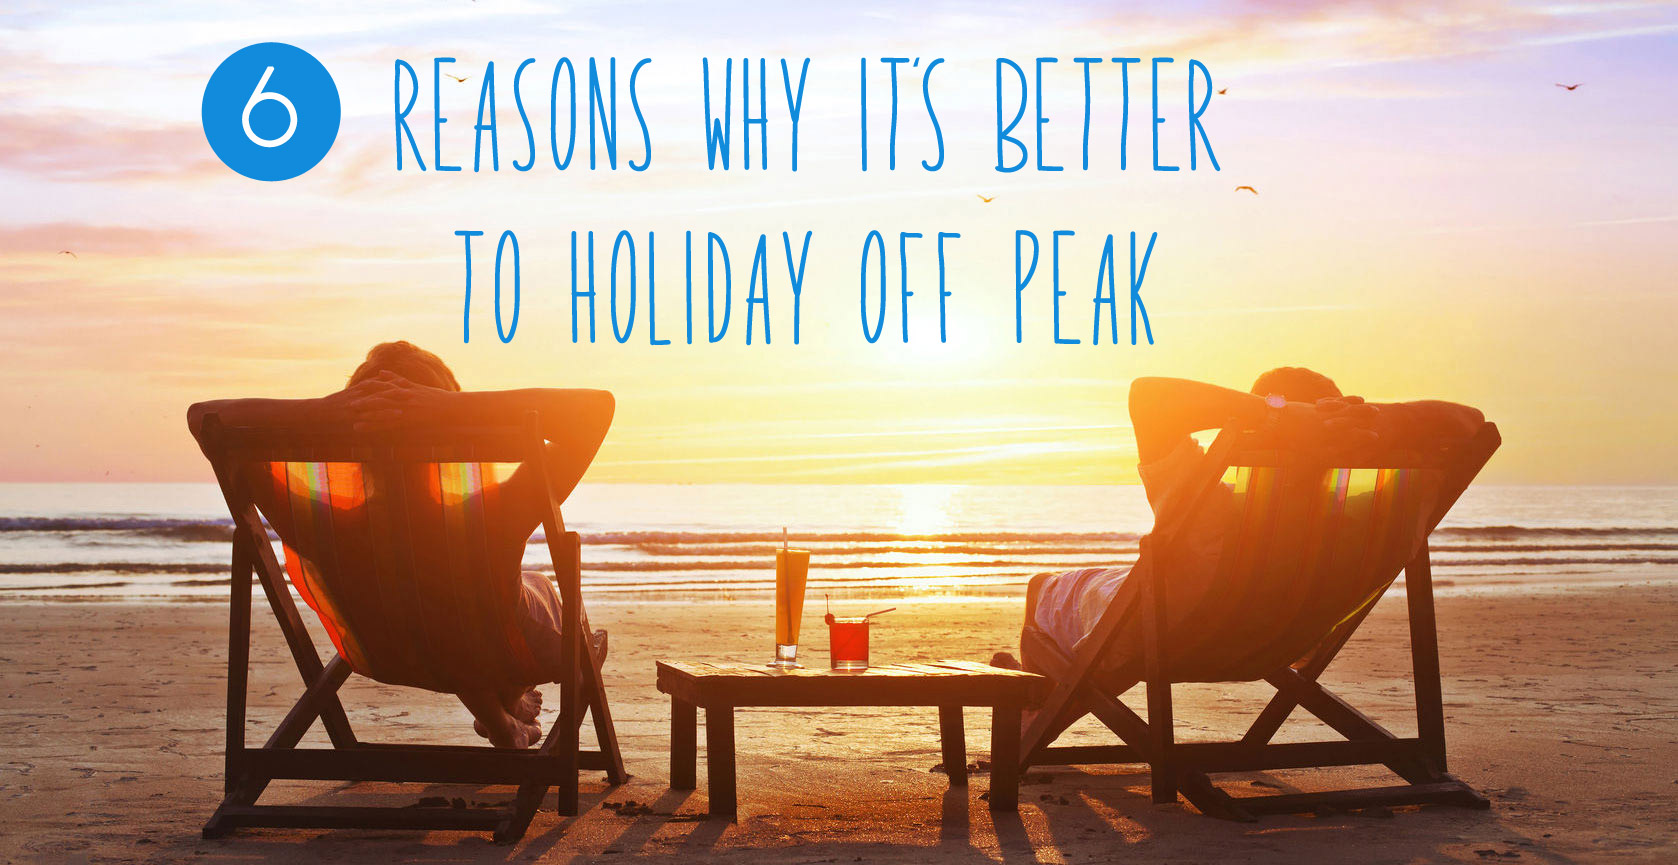 6 Reasons to travel off peak